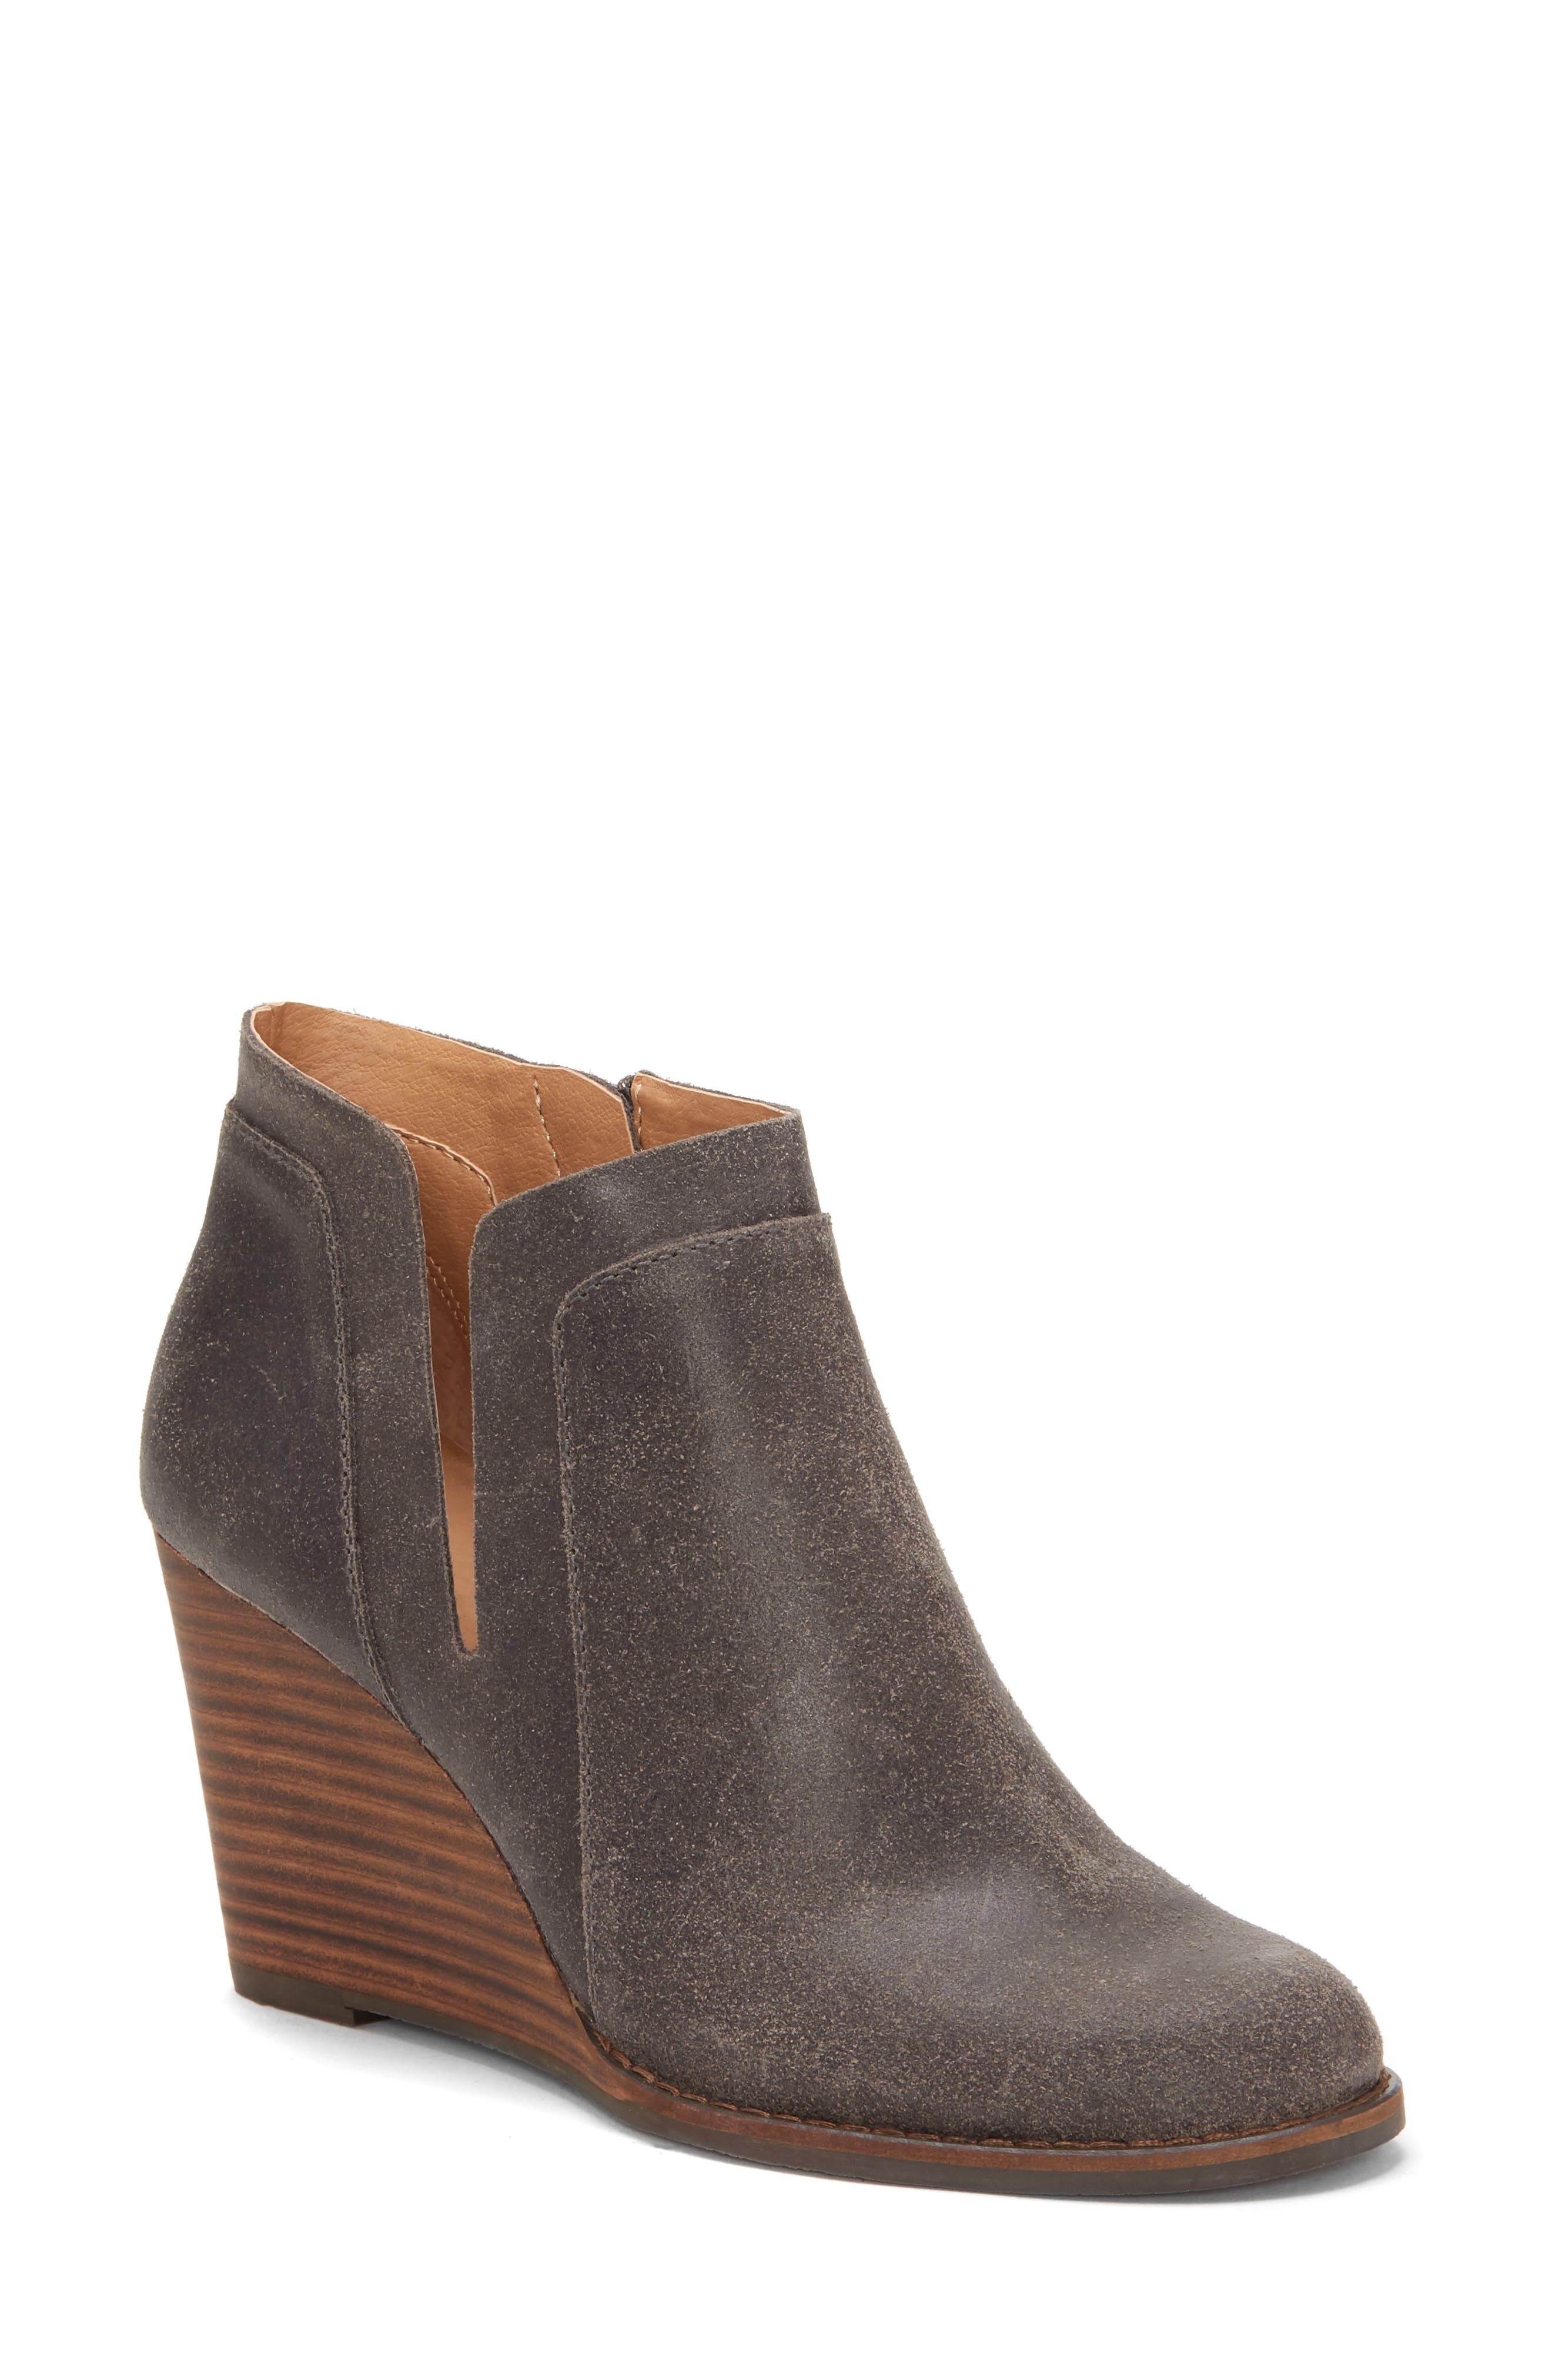 Yabba Wedge Bootie,                         Main,                         color, STORM SUEDE